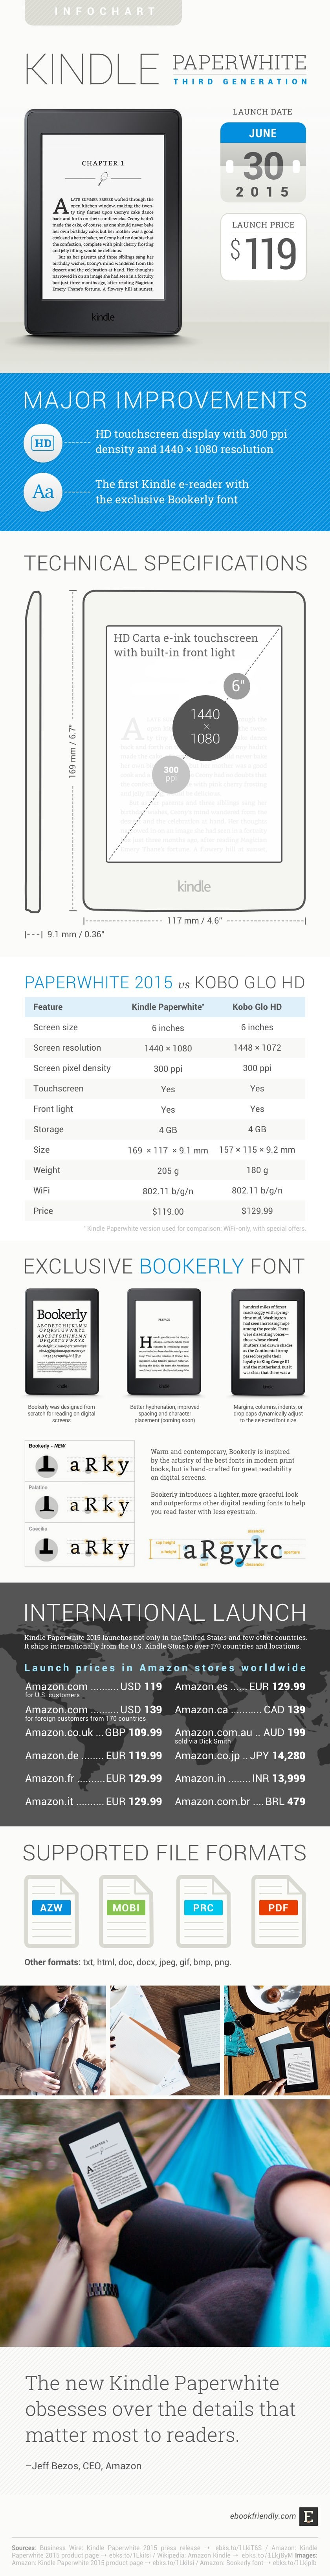 Kindle Paperwhite 2015 - everything you need to know #infographic